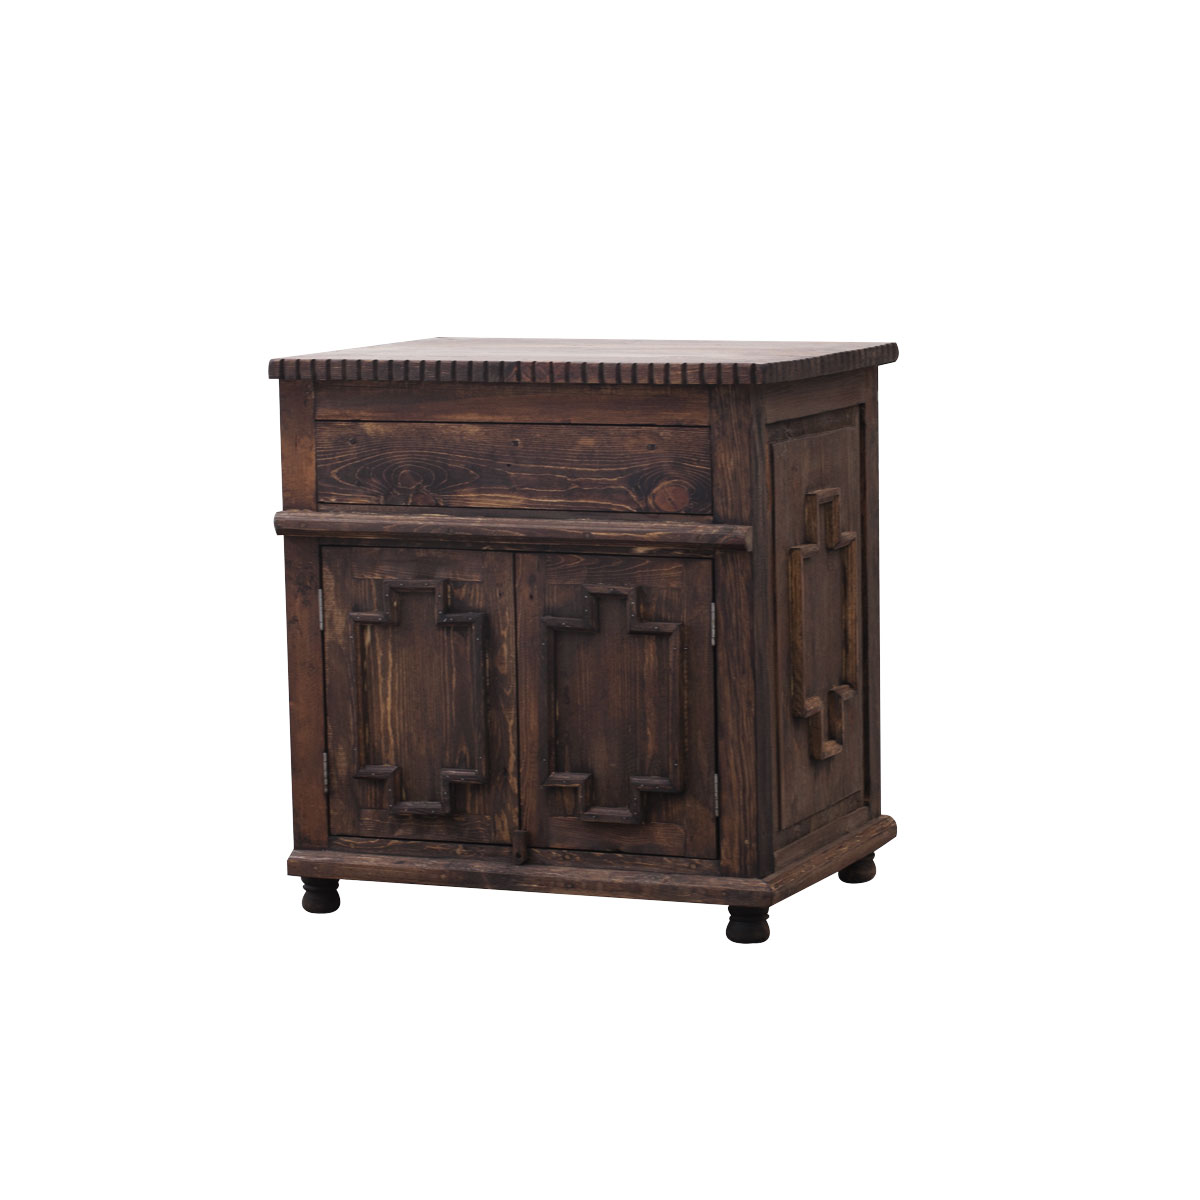 Order custom made small bathroom vanity online for Small vanity